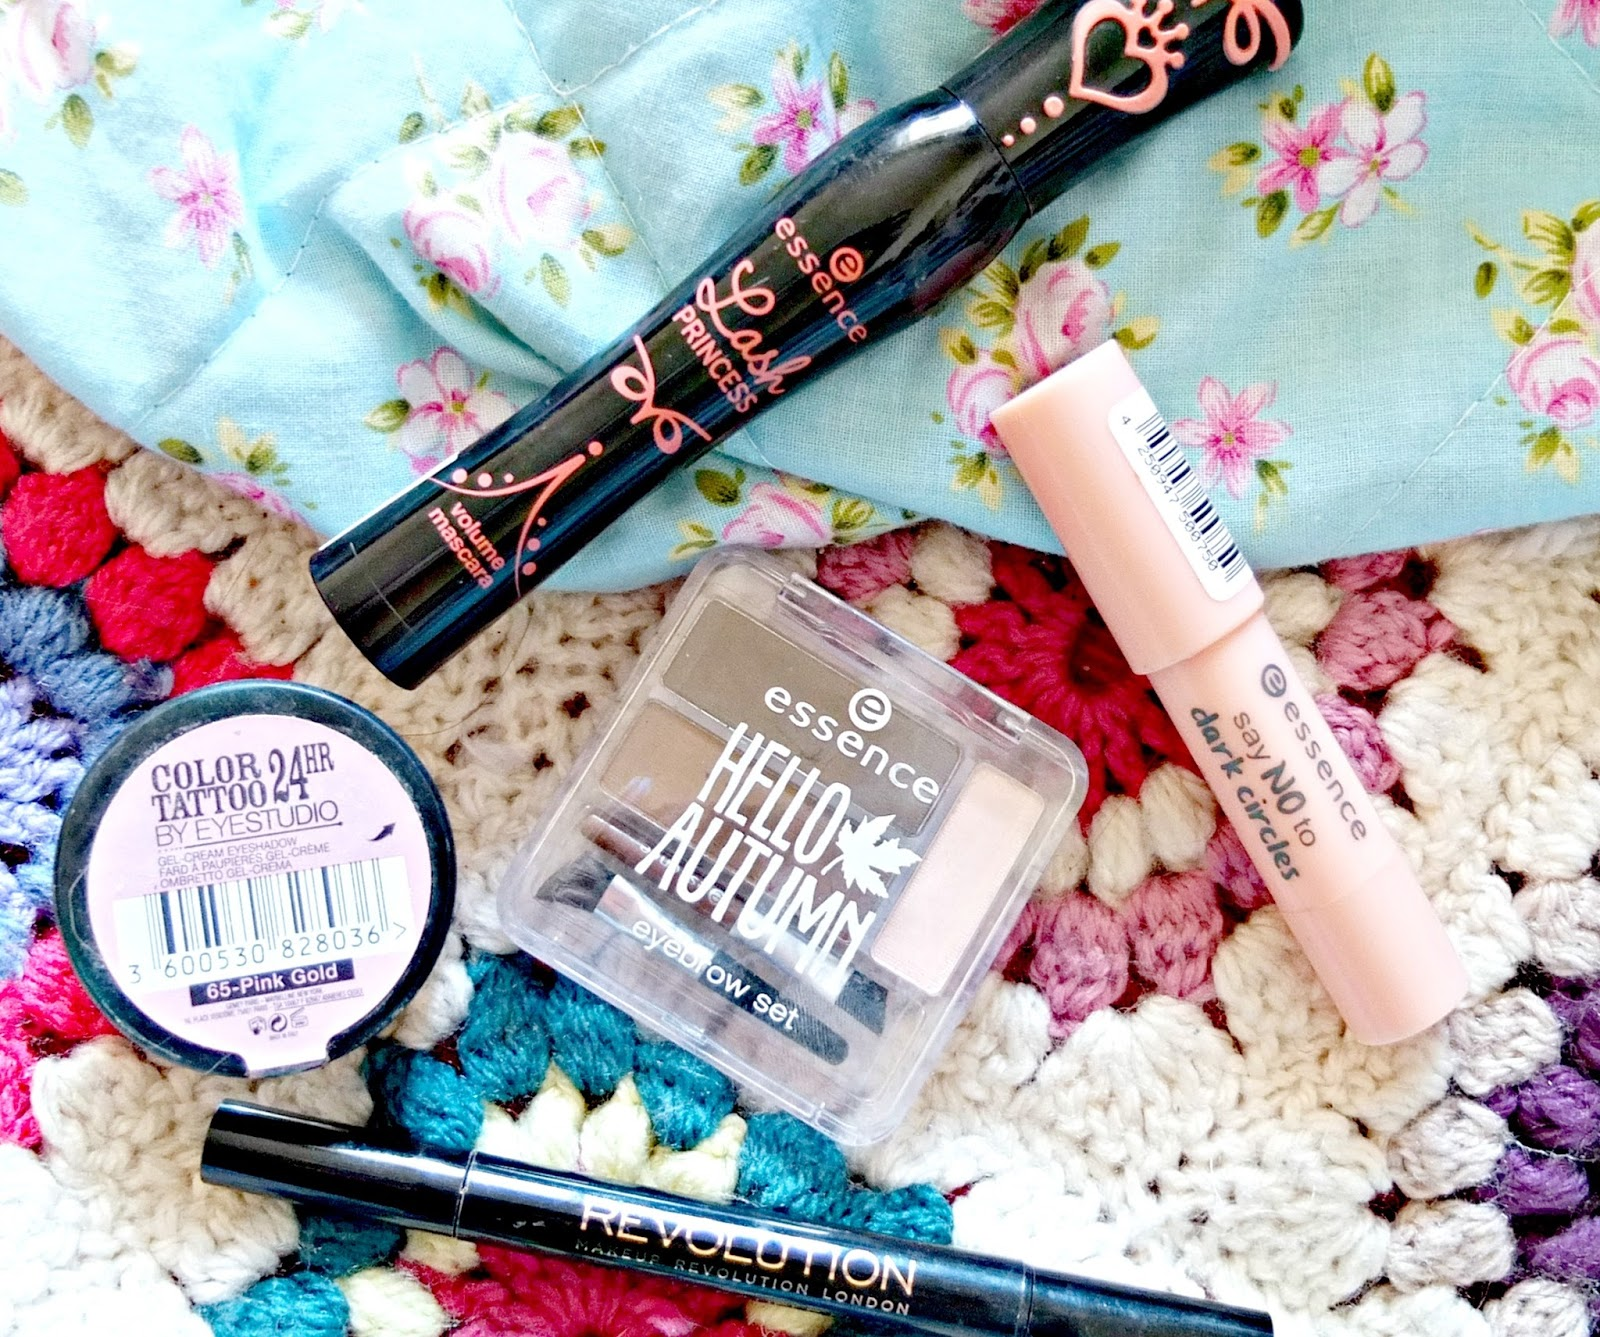 Beauty tips for brightening eyes on British Beauty Blog